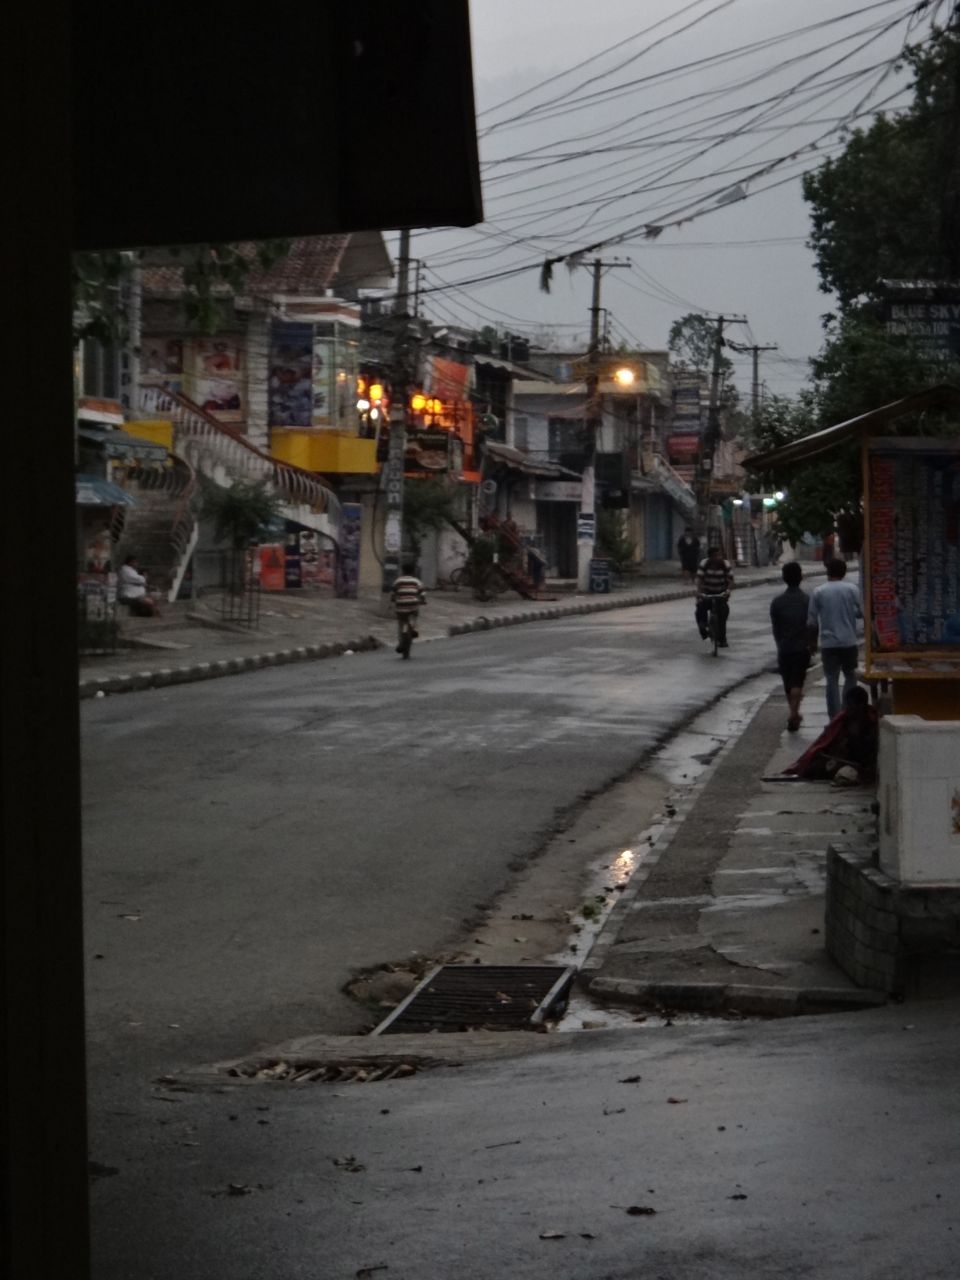 A bandha (political strike) AND a big storm in Pokhara. The normally packed and busy streets were like a ghost town. Fun.